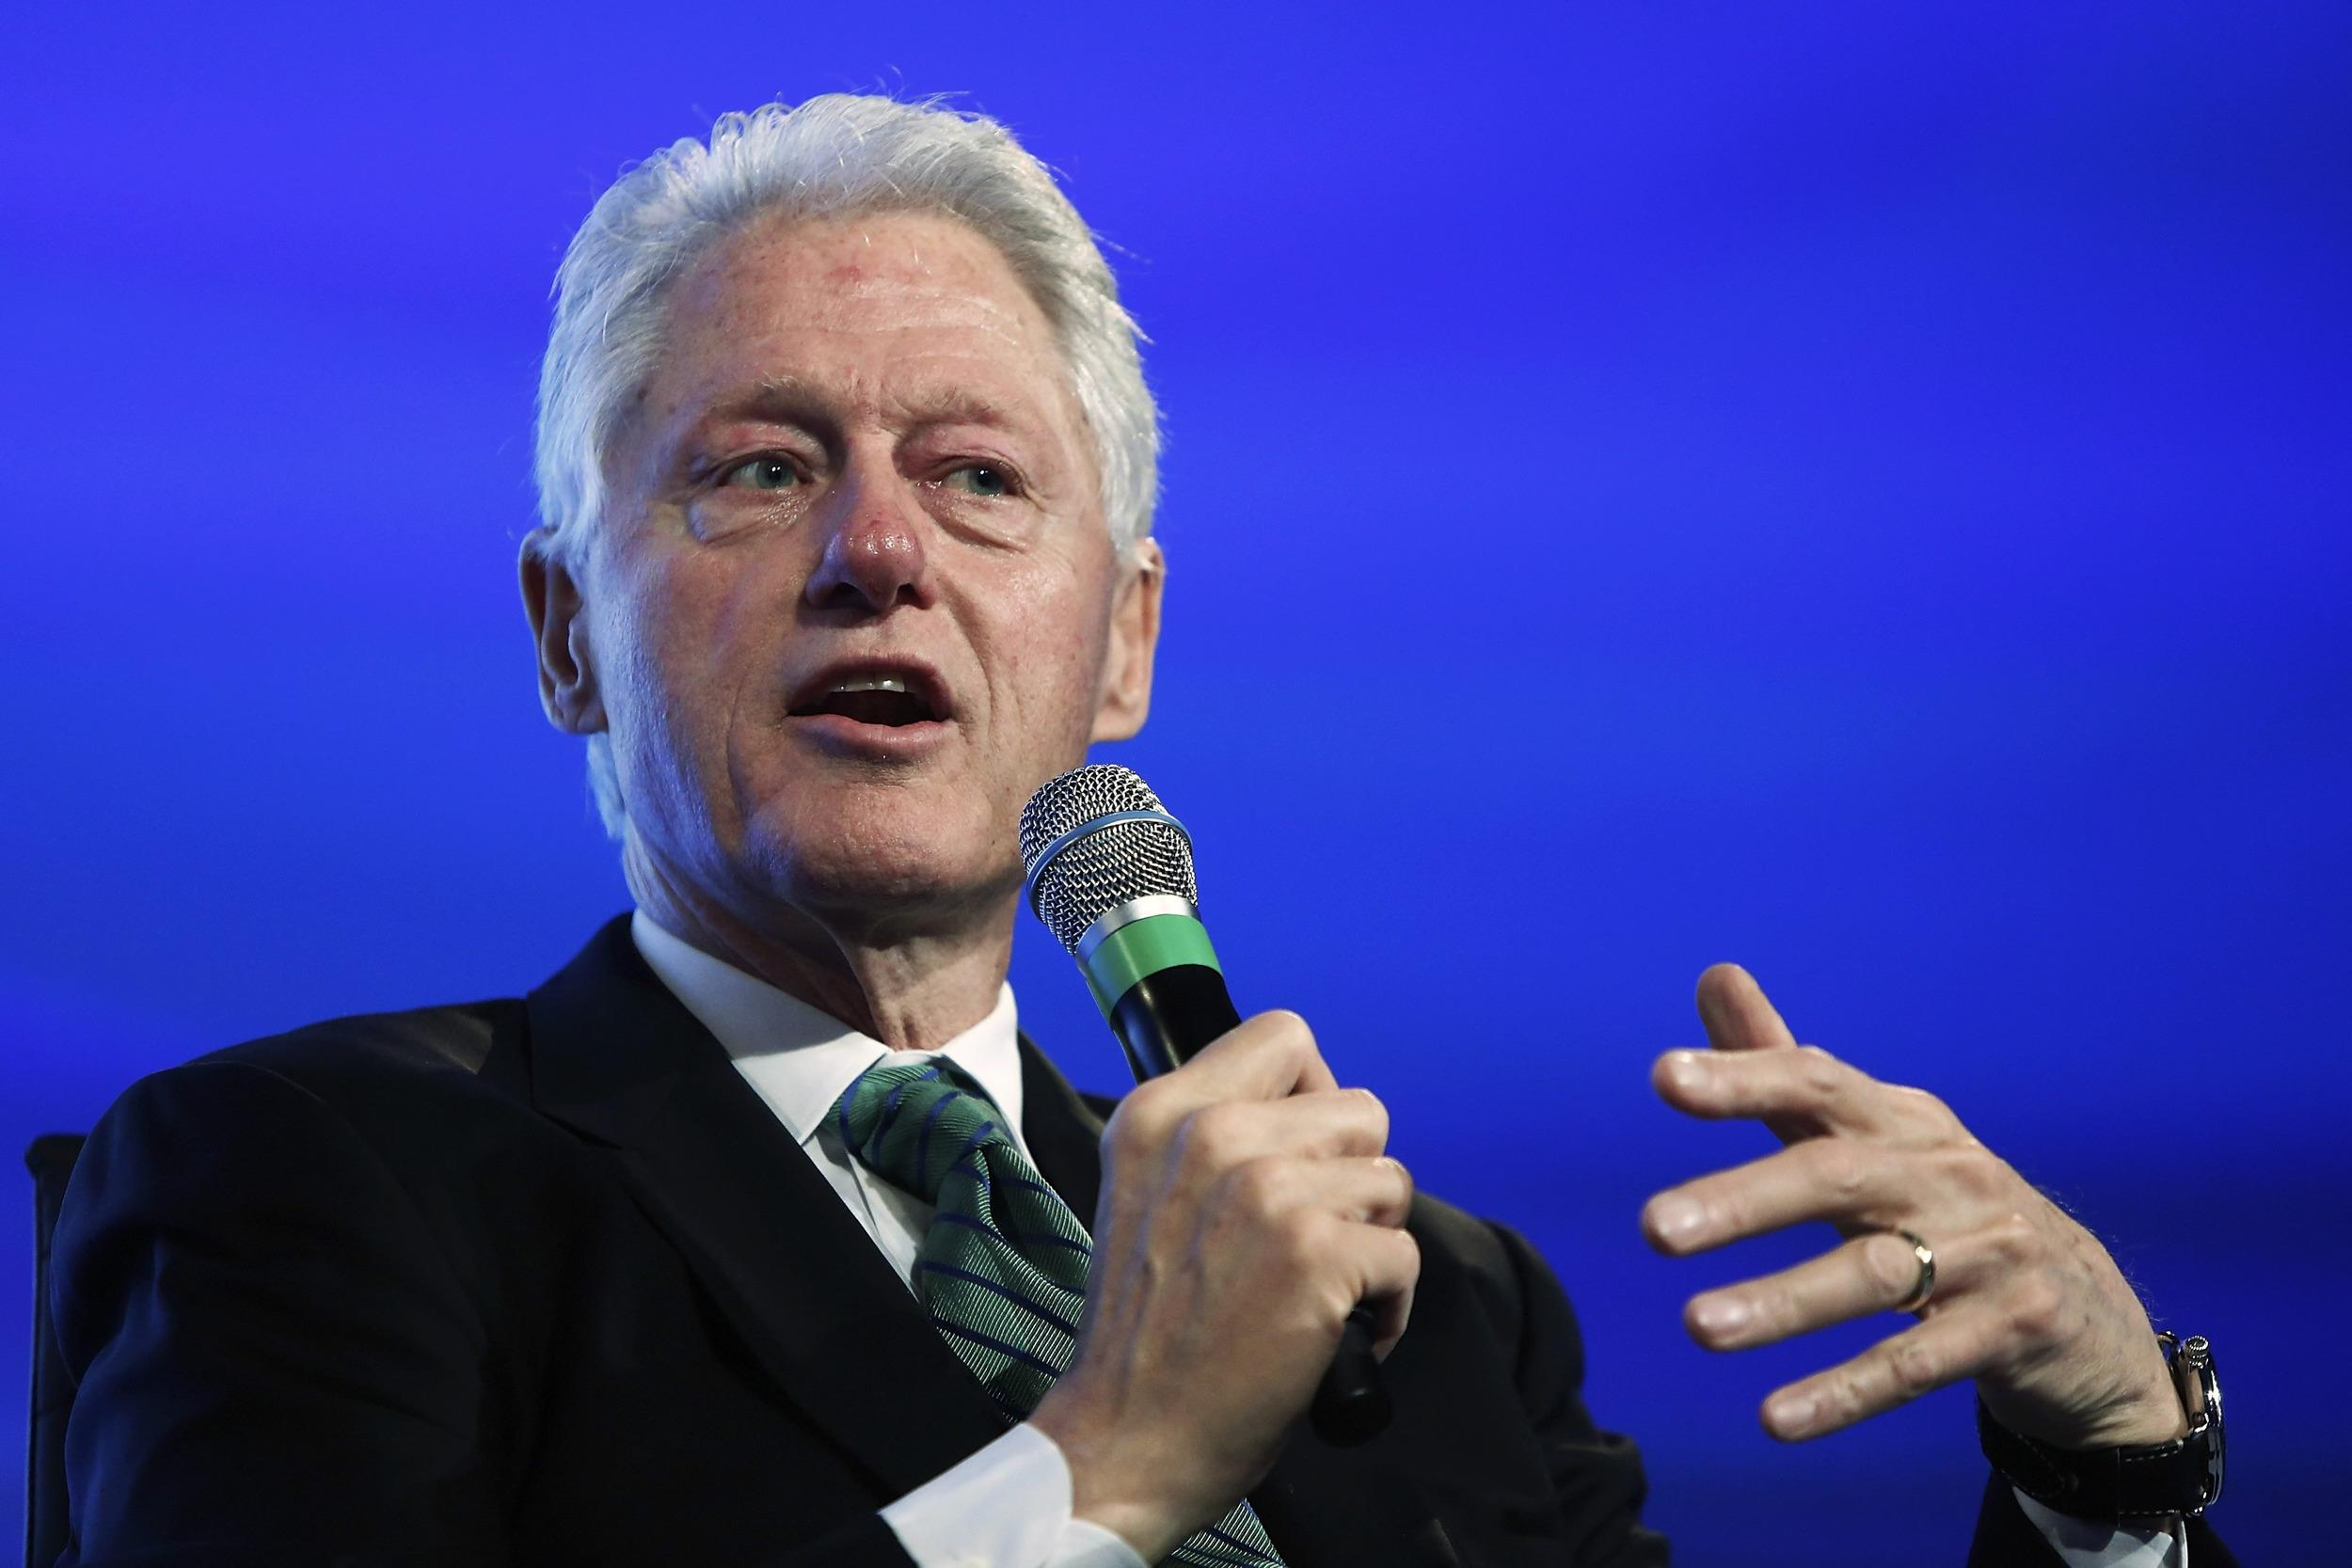 Image: Former U.S. President Clinton speaks during an onstage interview during the 2014 Peterson Foundation Fiscal Summit in Washington